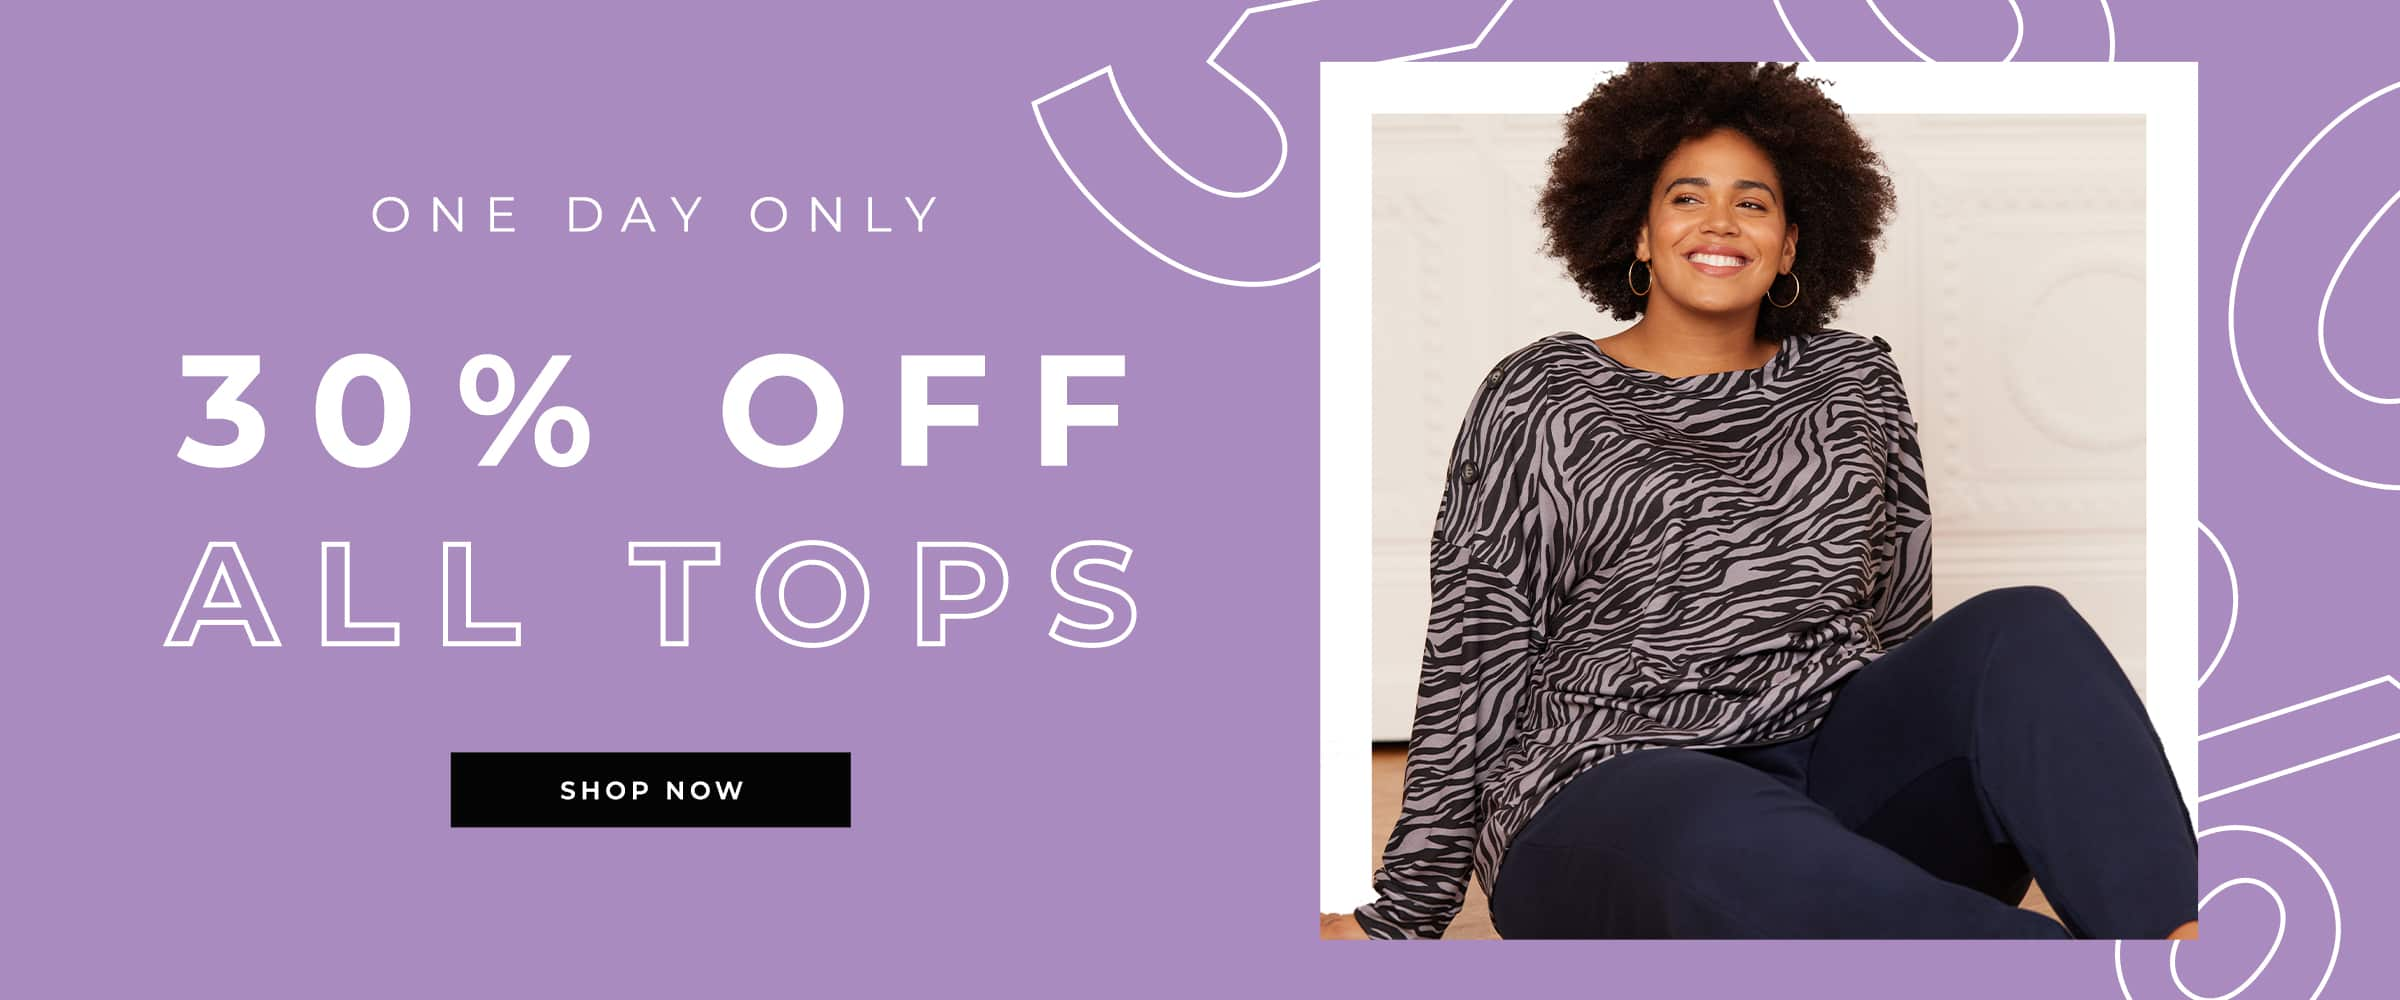 Evans Clothing Evans Clothing: 30% off plus size ladies tops